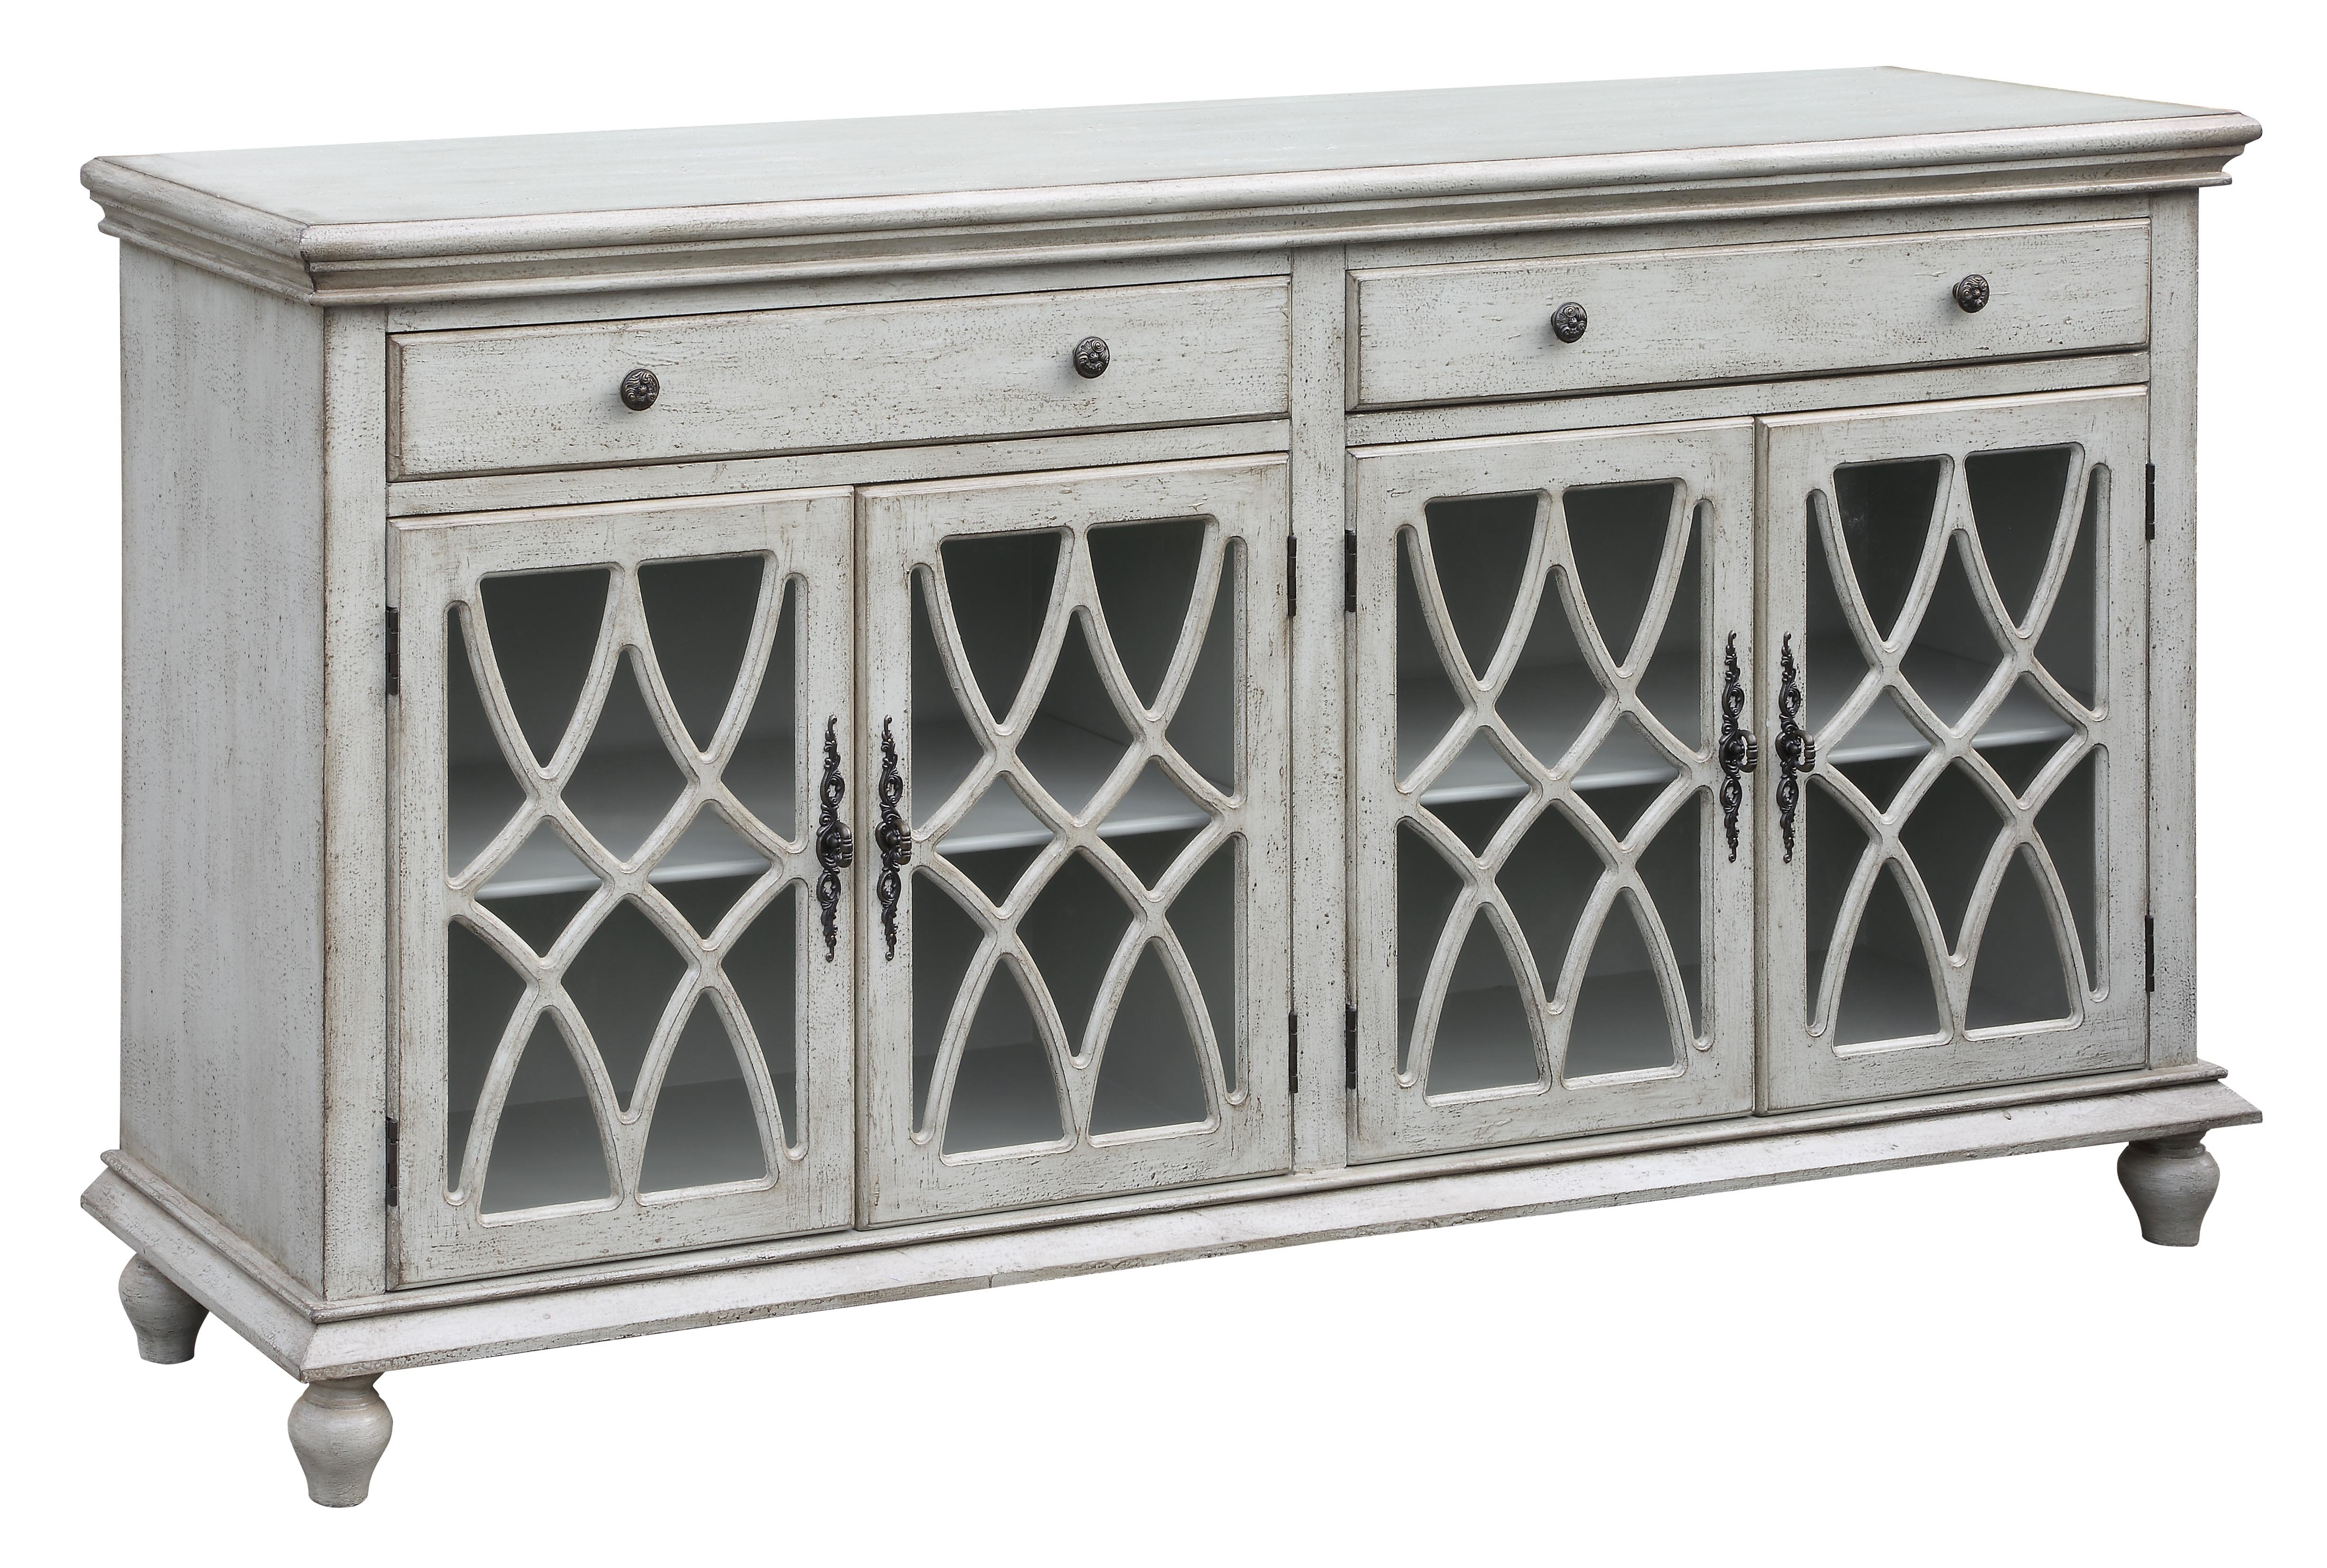 Sideboards & Credenzas | Joss & Main Pertaining To Most Popular Hewlett Sideboards (#18 of 20)